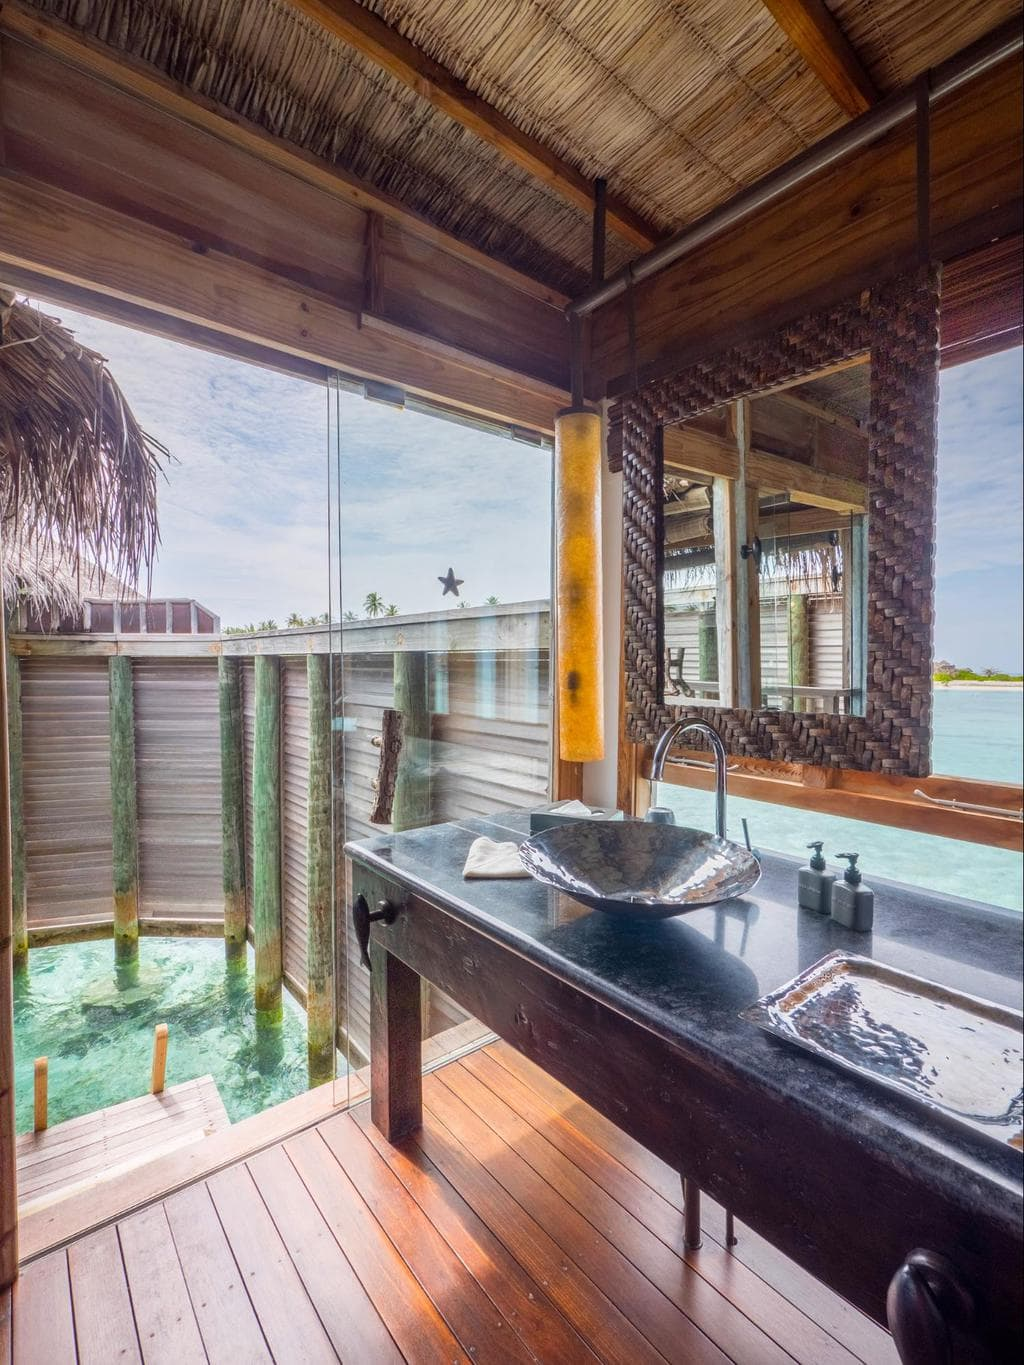 Semi open-air bathroom at Gili Lankanfushi